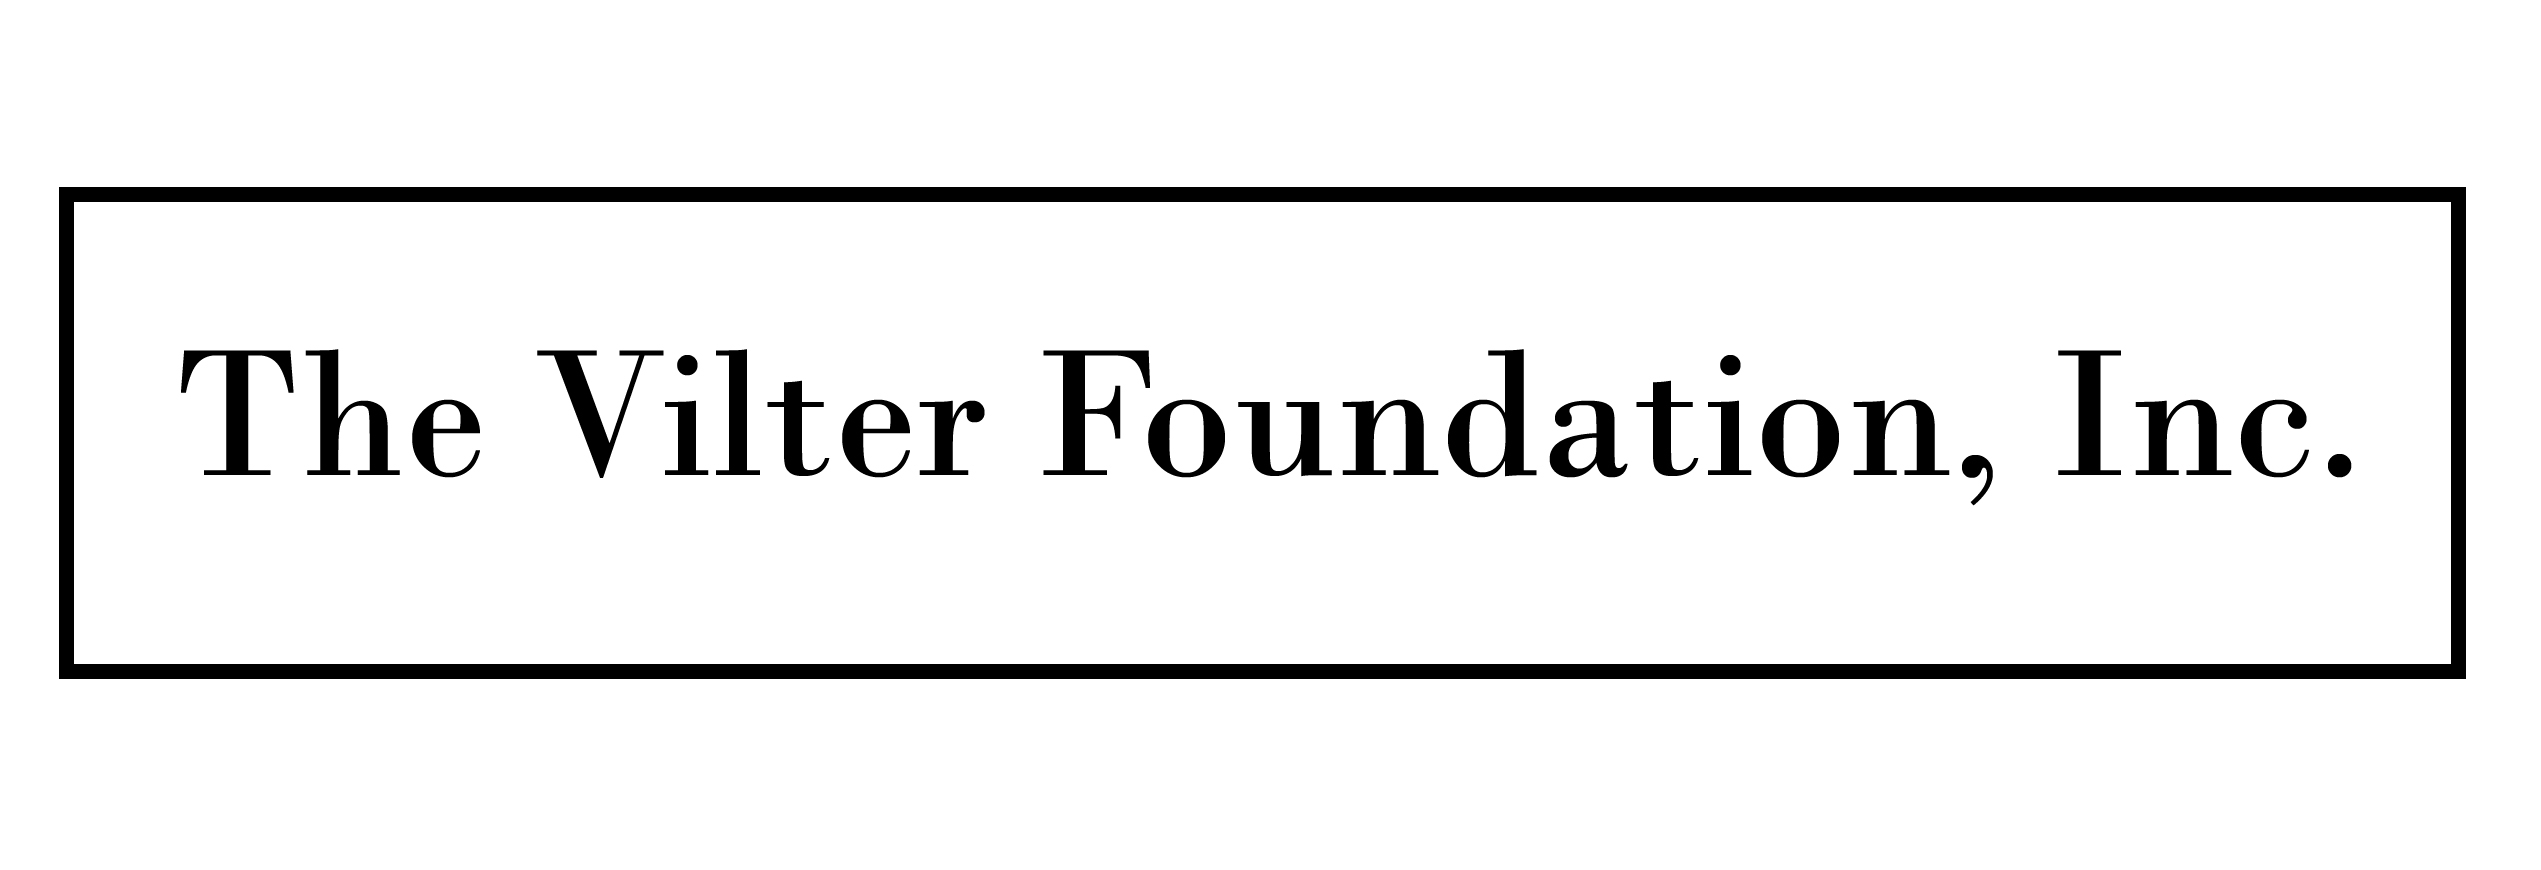 vilter foundation logo